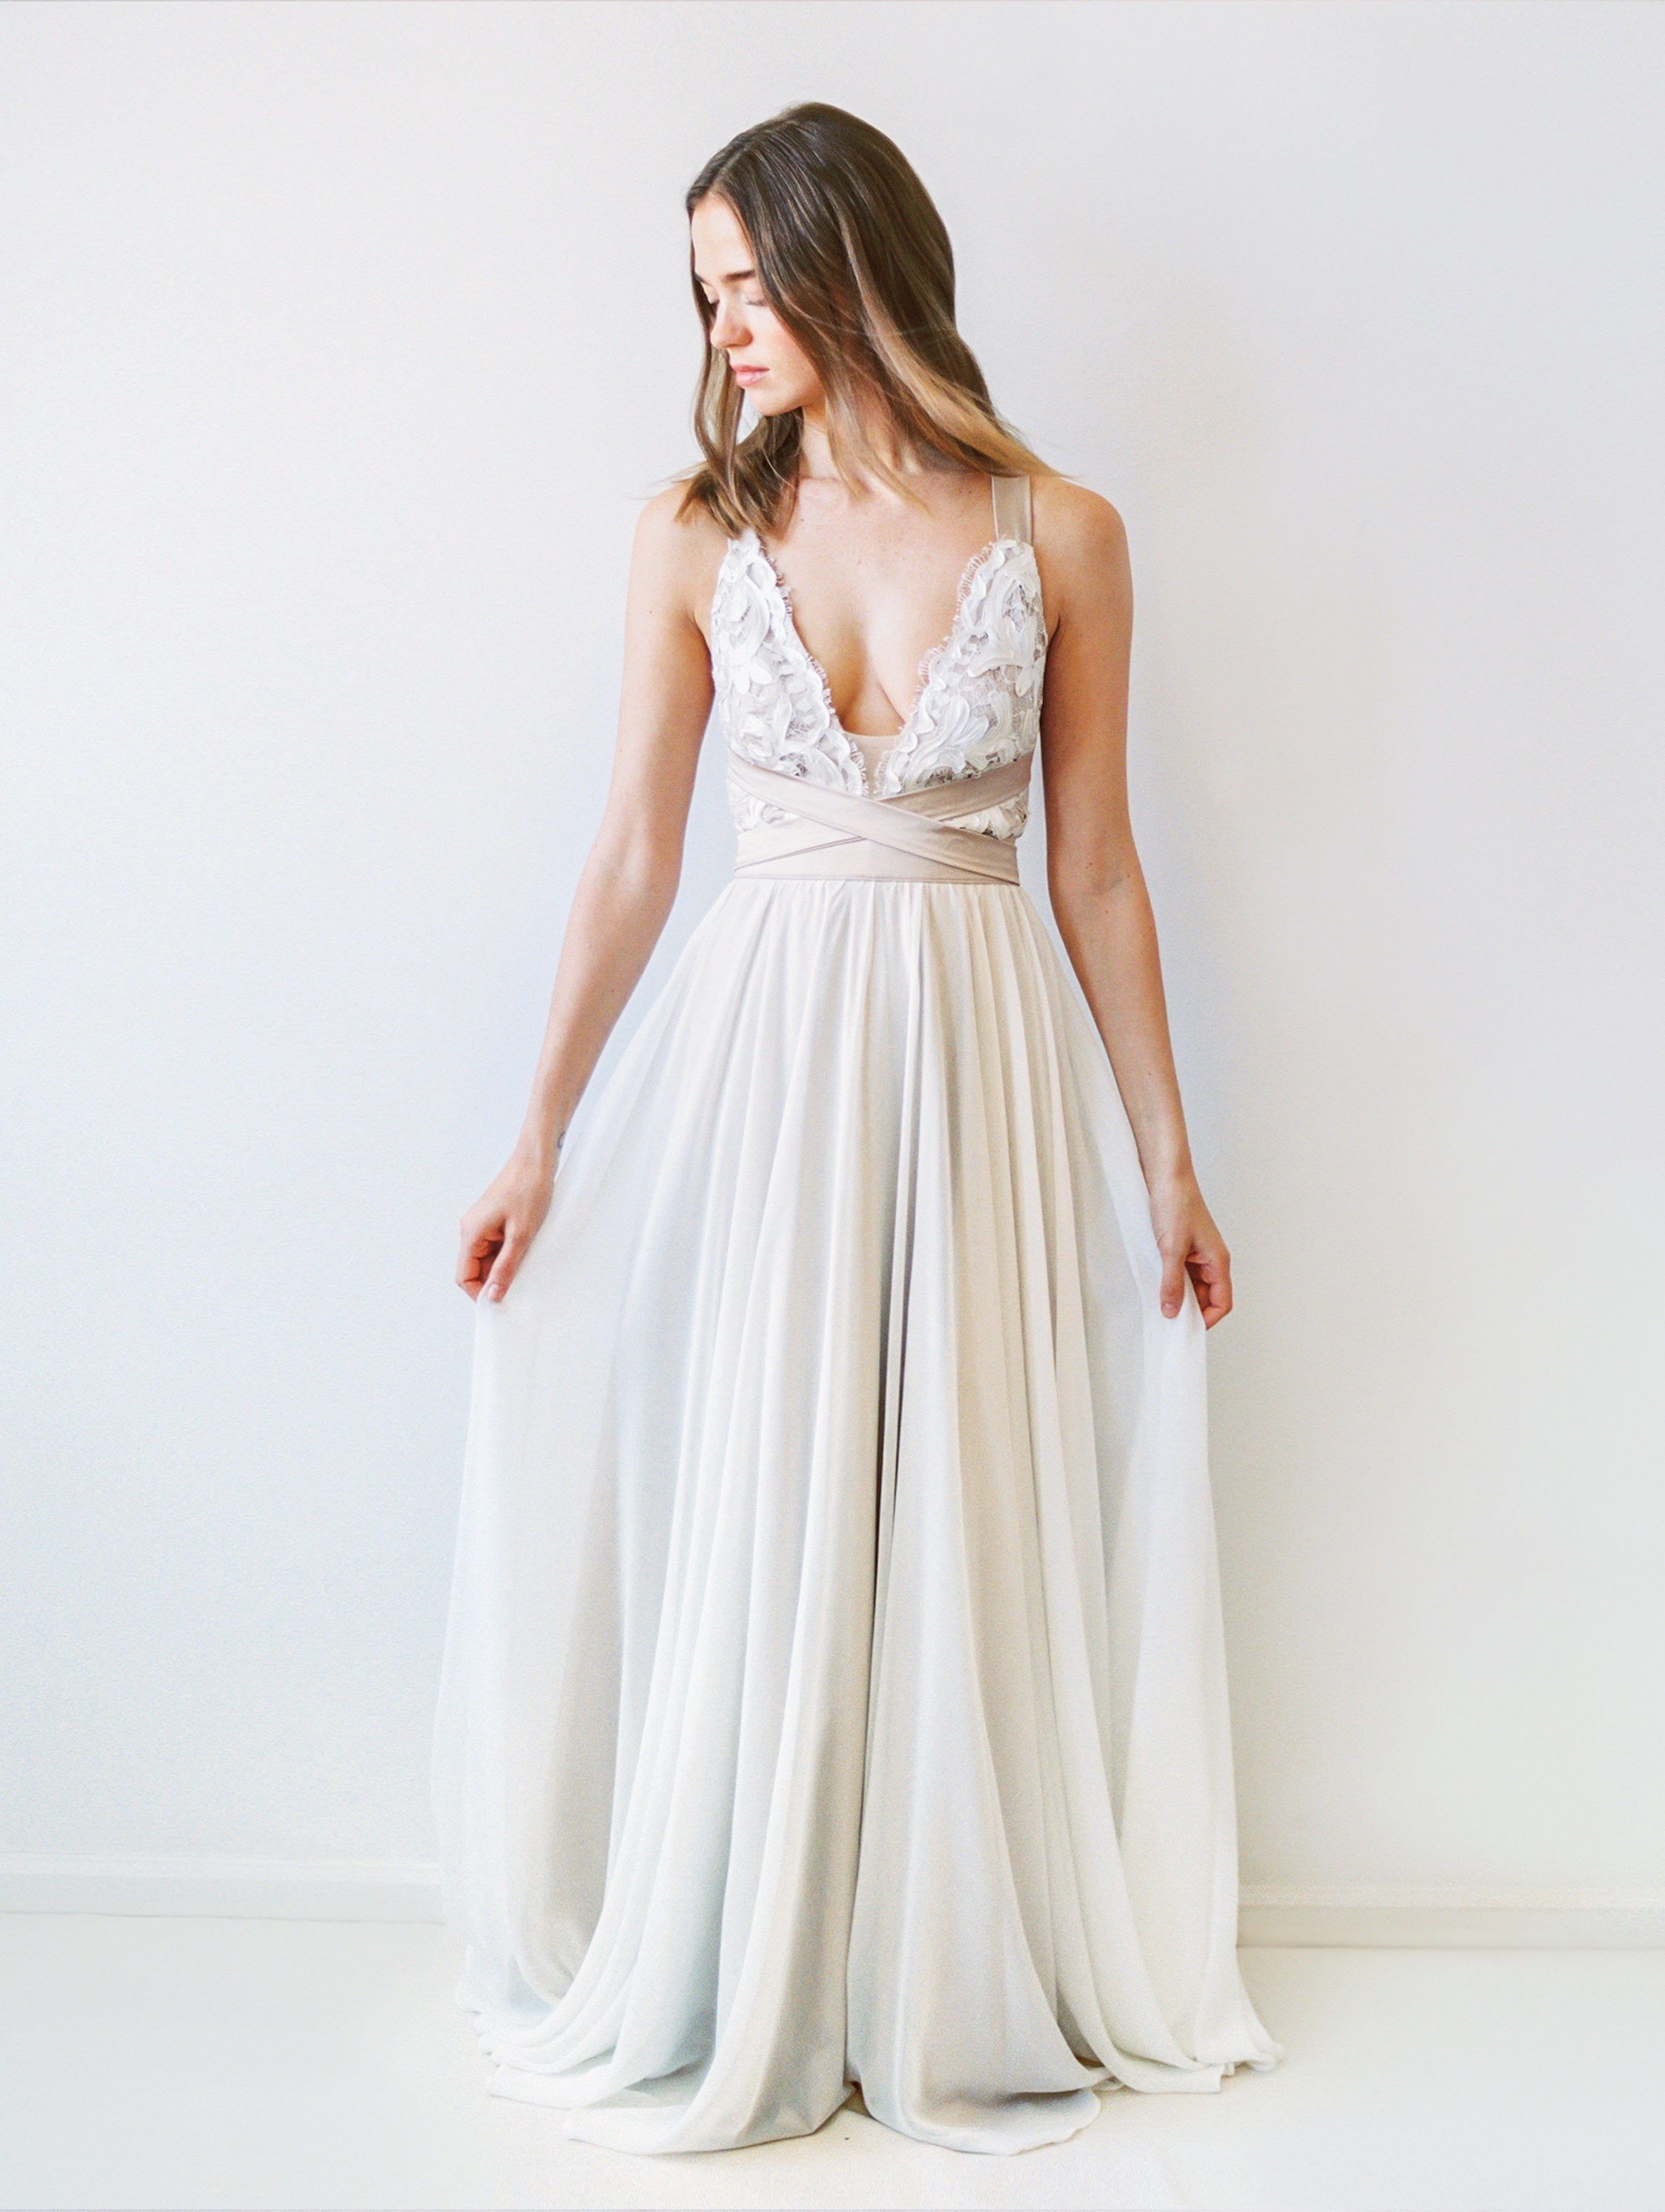 Beach wedding dress with multiway cross-back tie in champagne colour